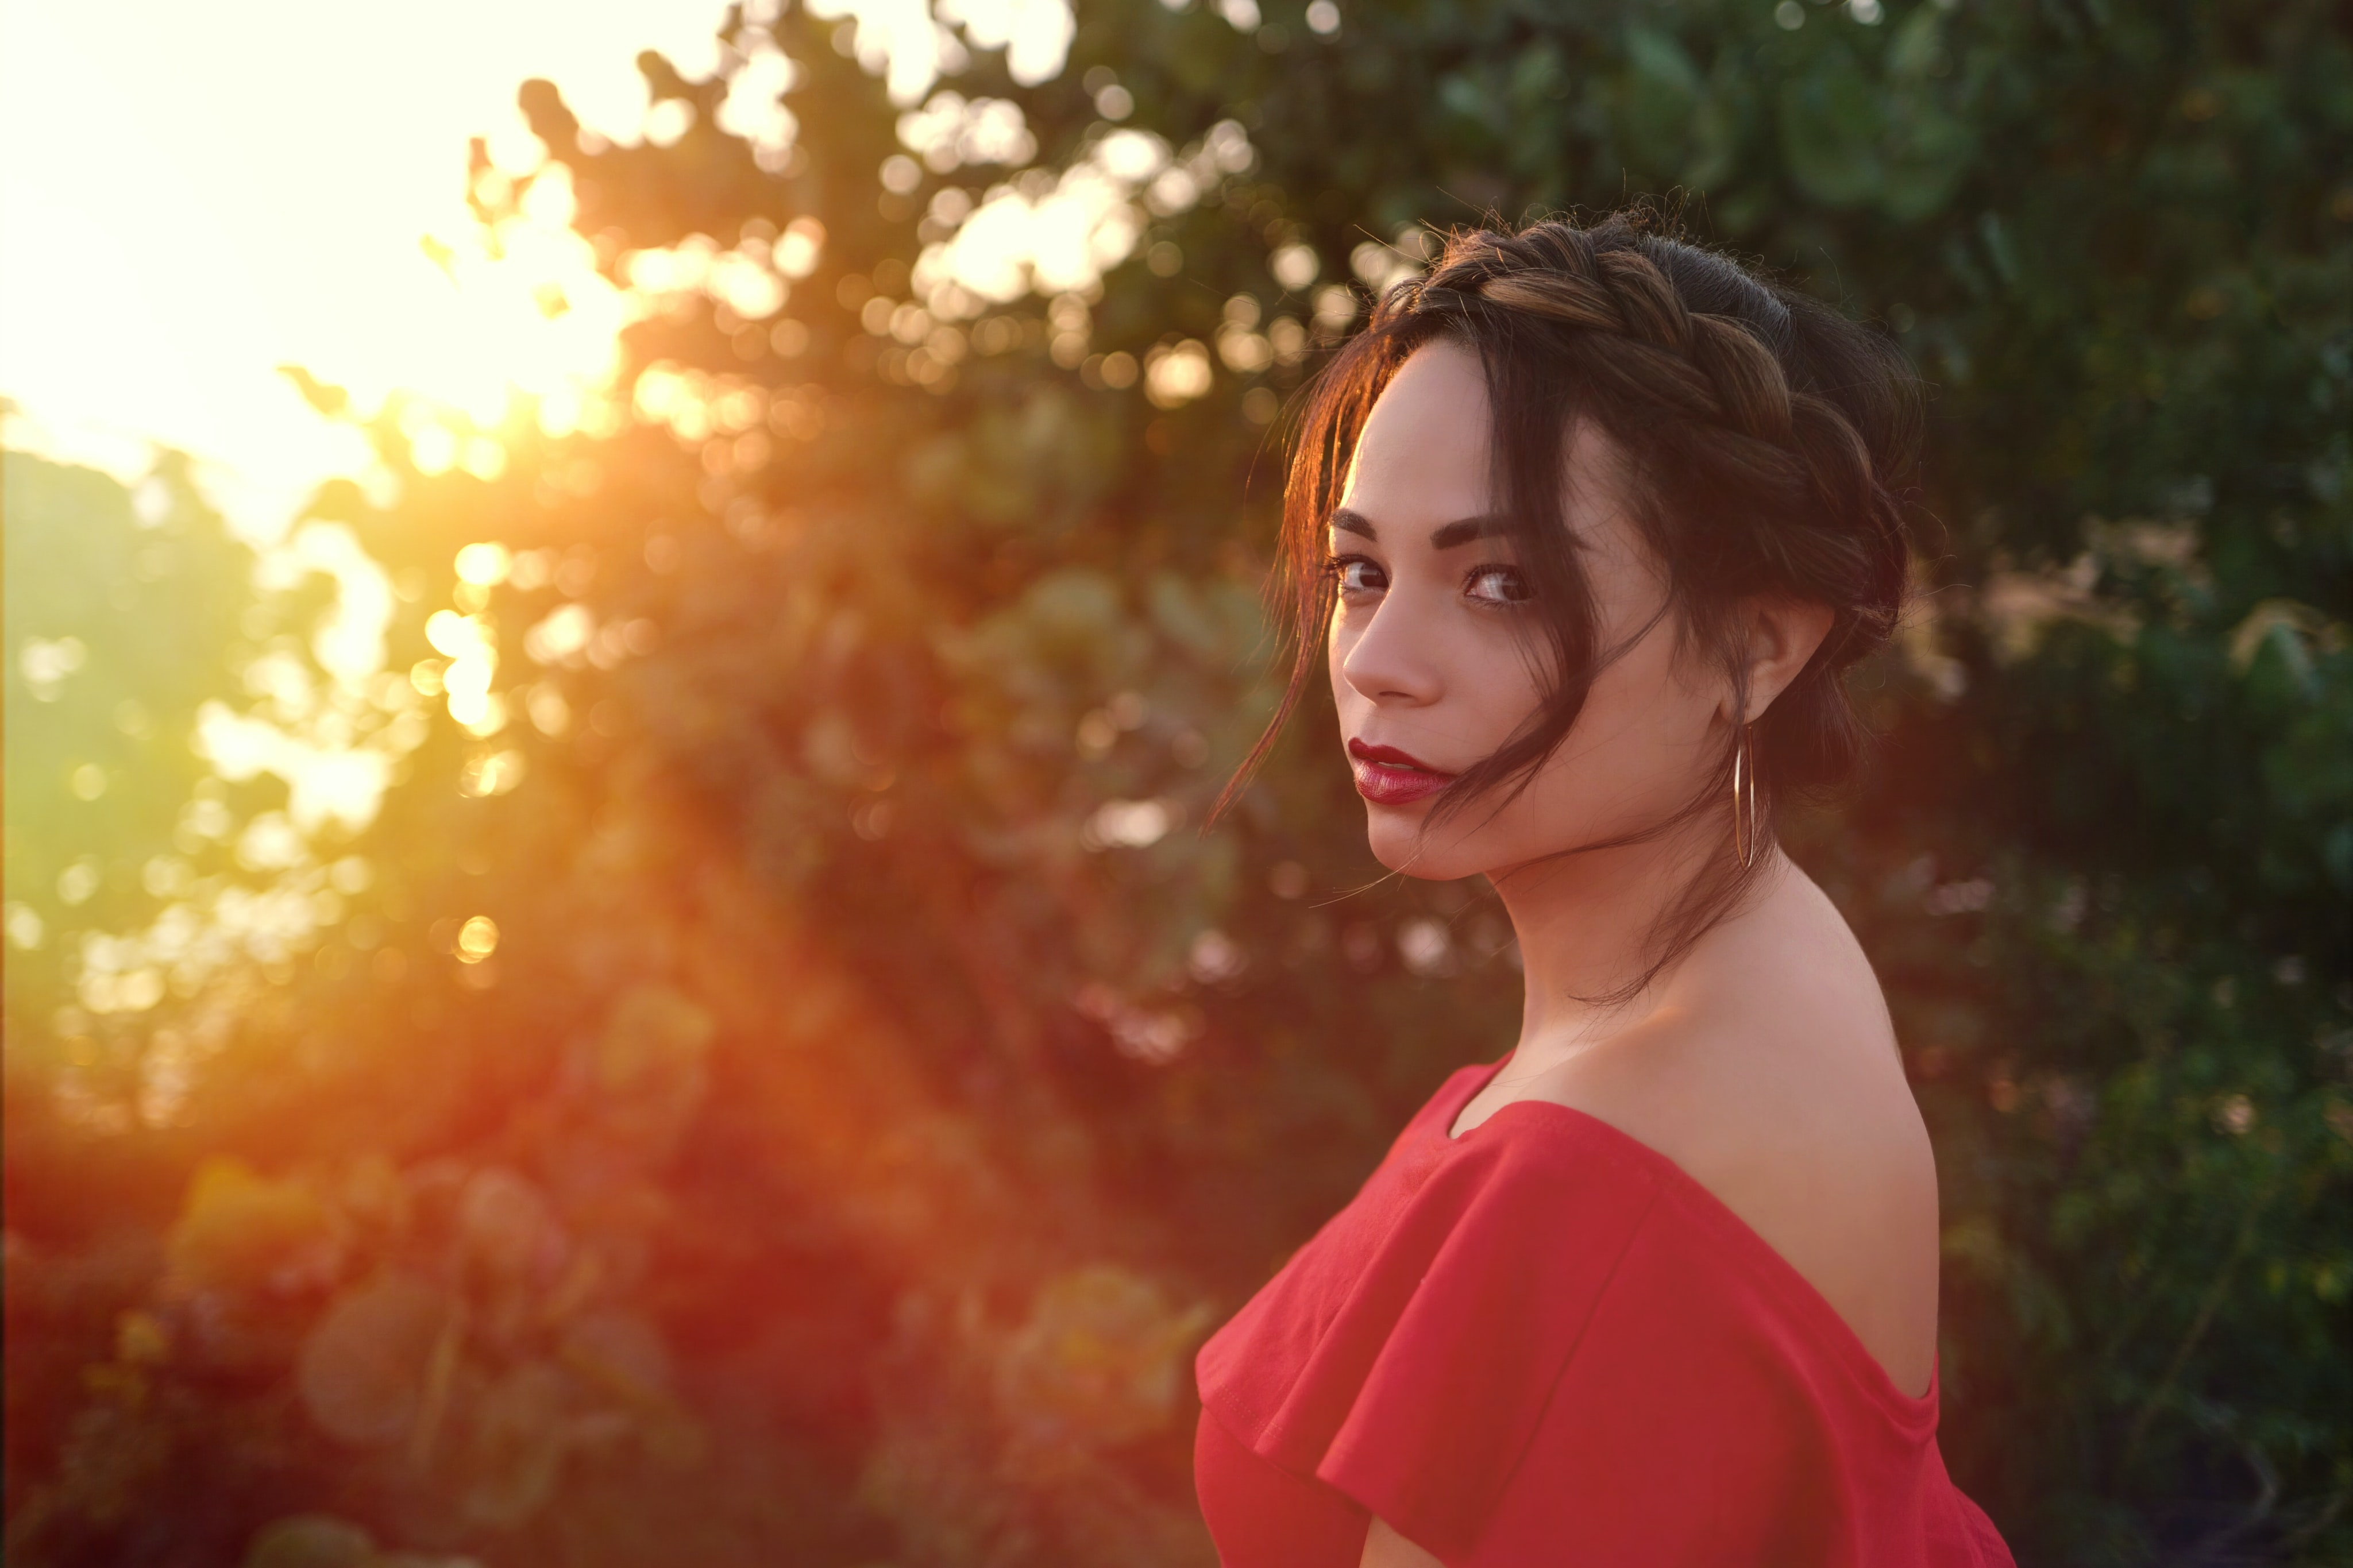 Woman in a red dress looks over her shoulder at sunset